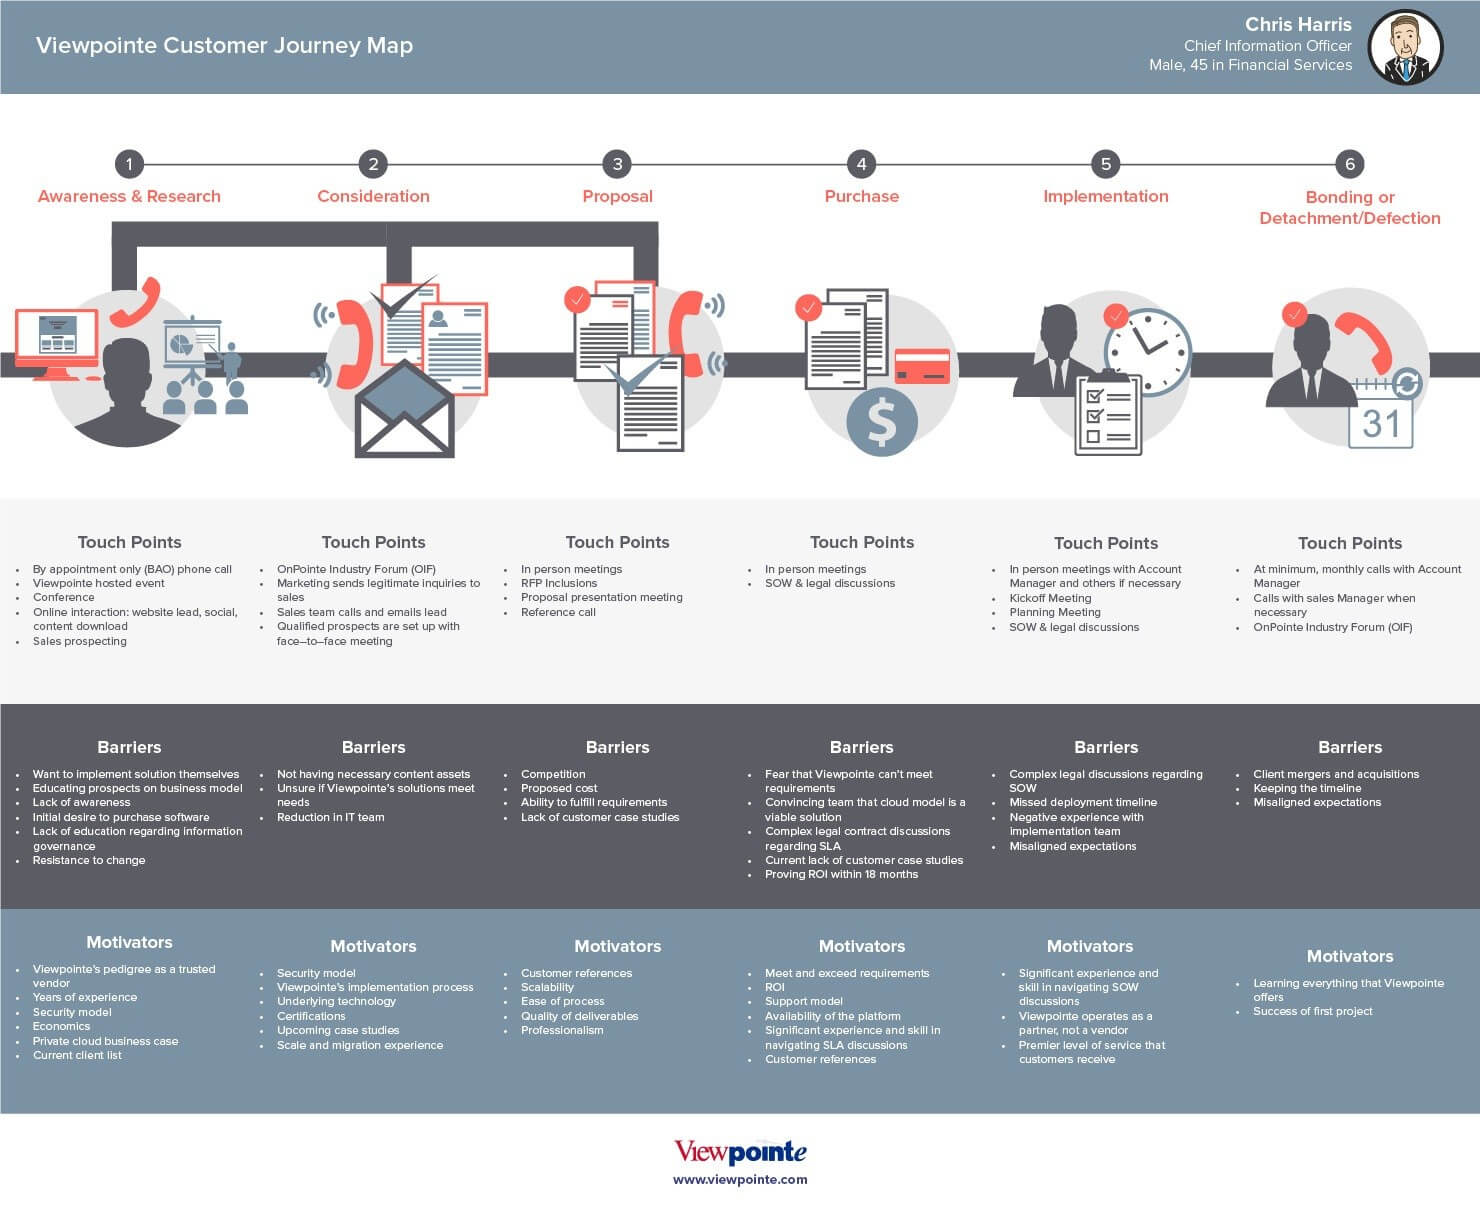 Customer journey barriers